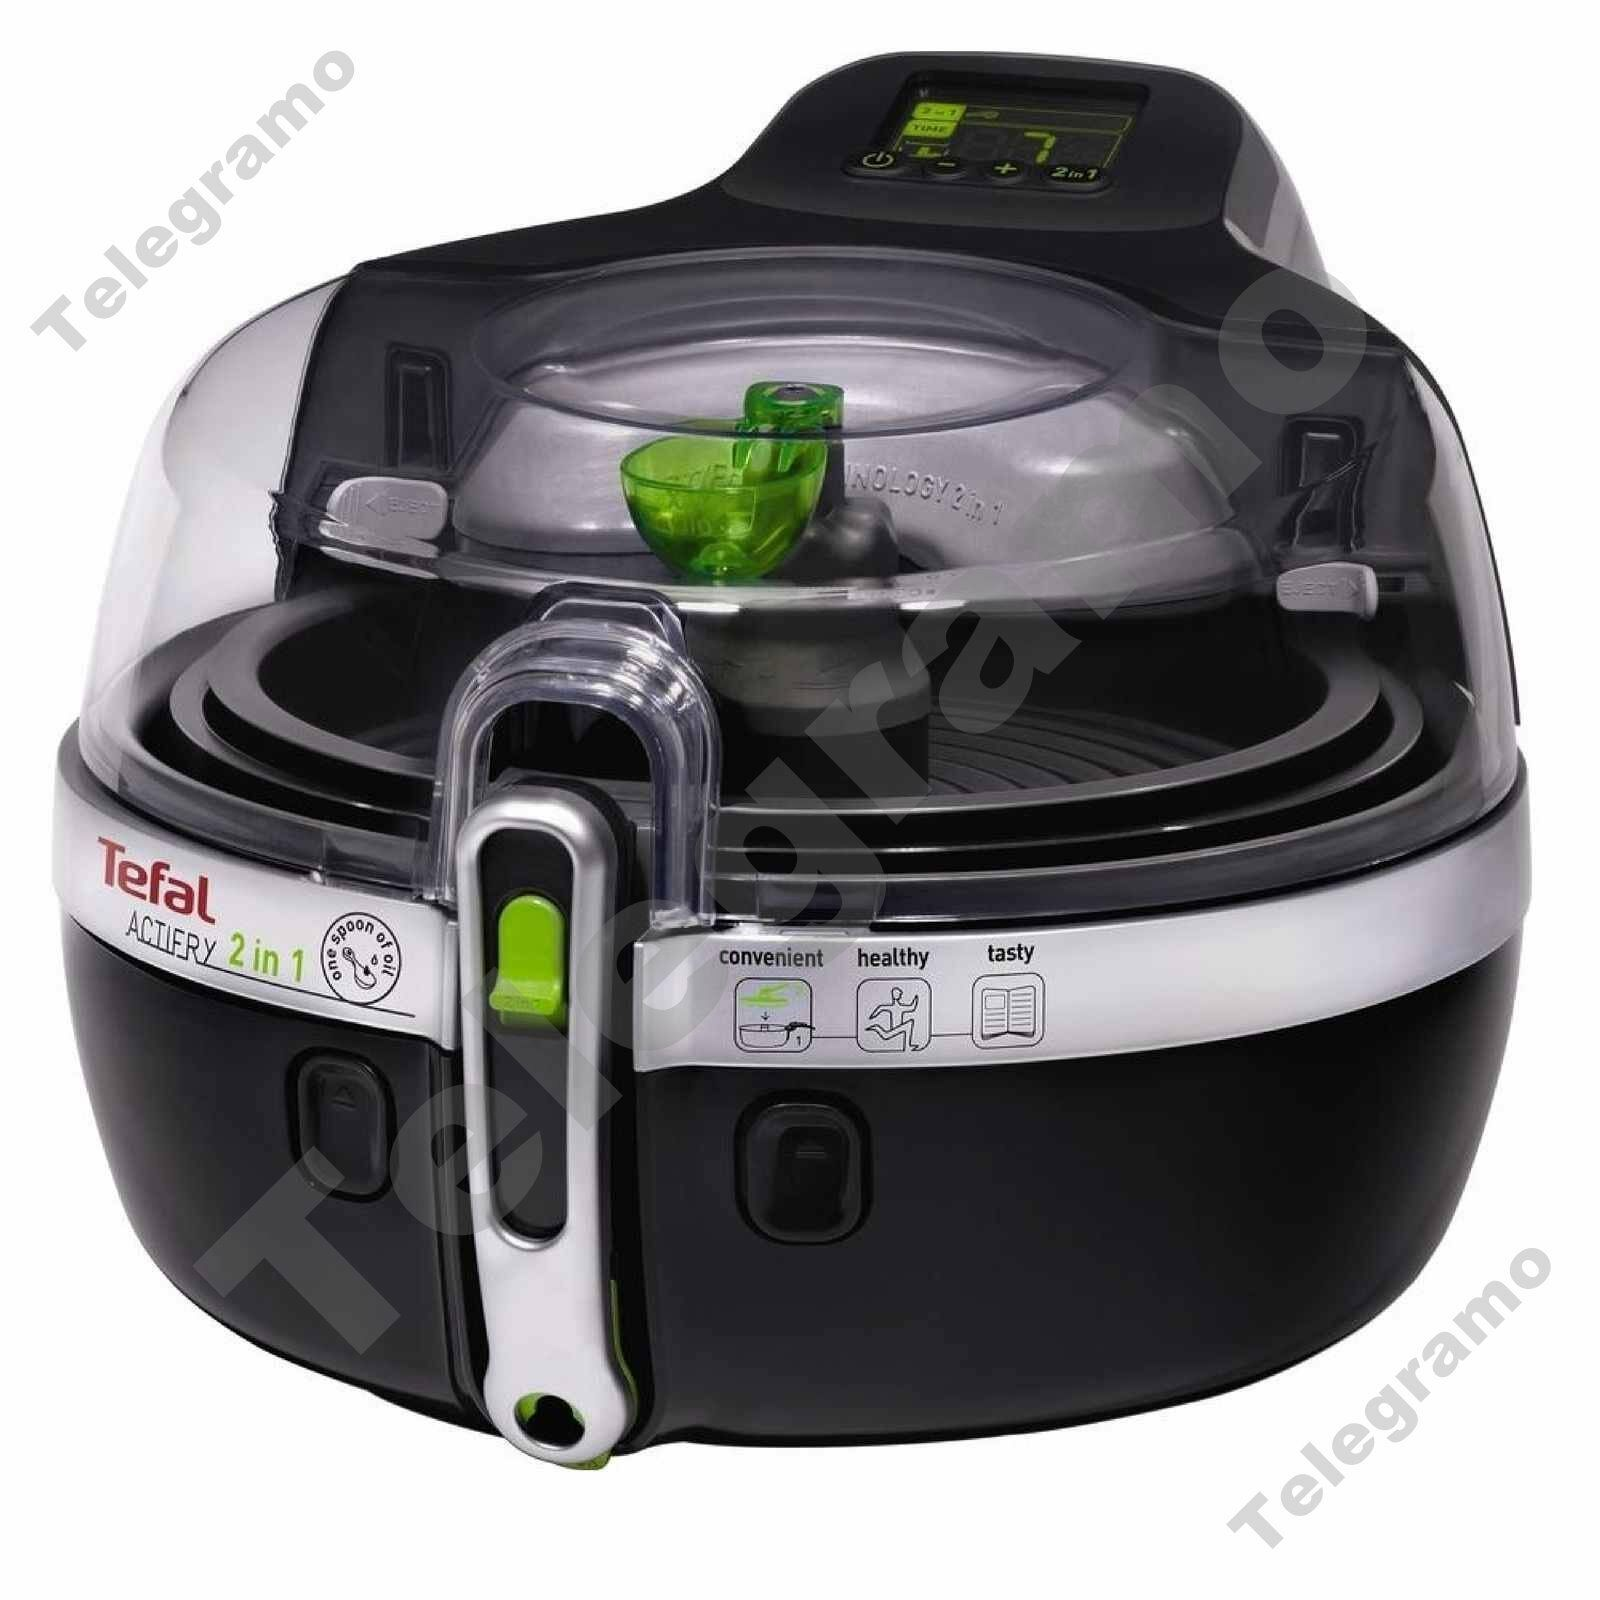 New Tefal YV960140 ActiFry 2 in 1 Low Fat 1.5Kg Fryer with redating Paddle